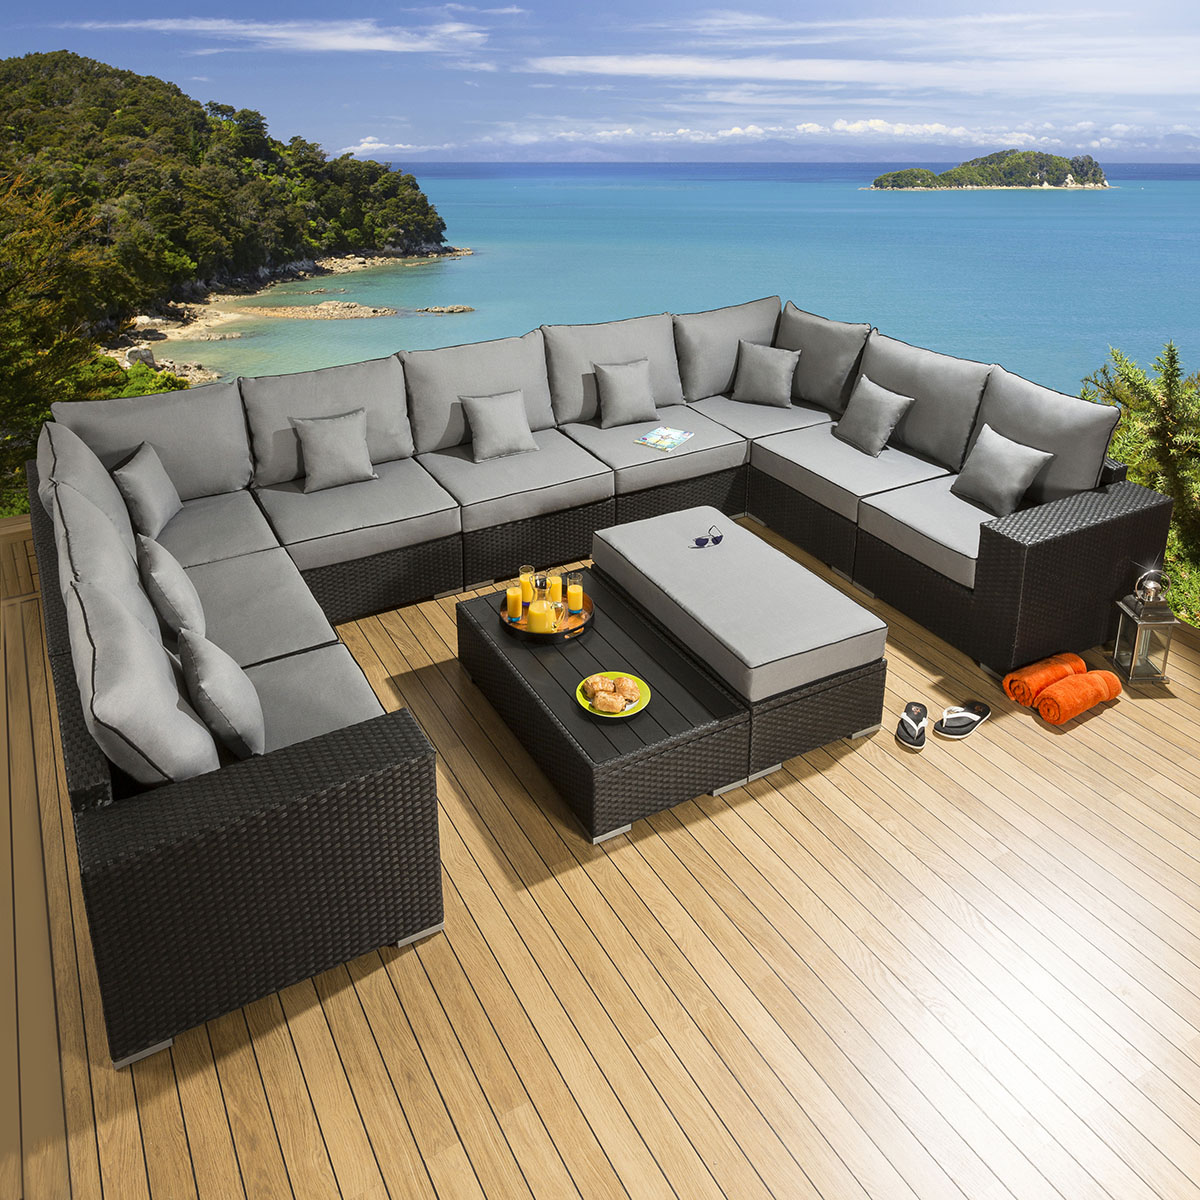 large outdoor sofa outdoor couch pillows lrqlt. Black Bedroom Furniture Sets. Home Design Ideas